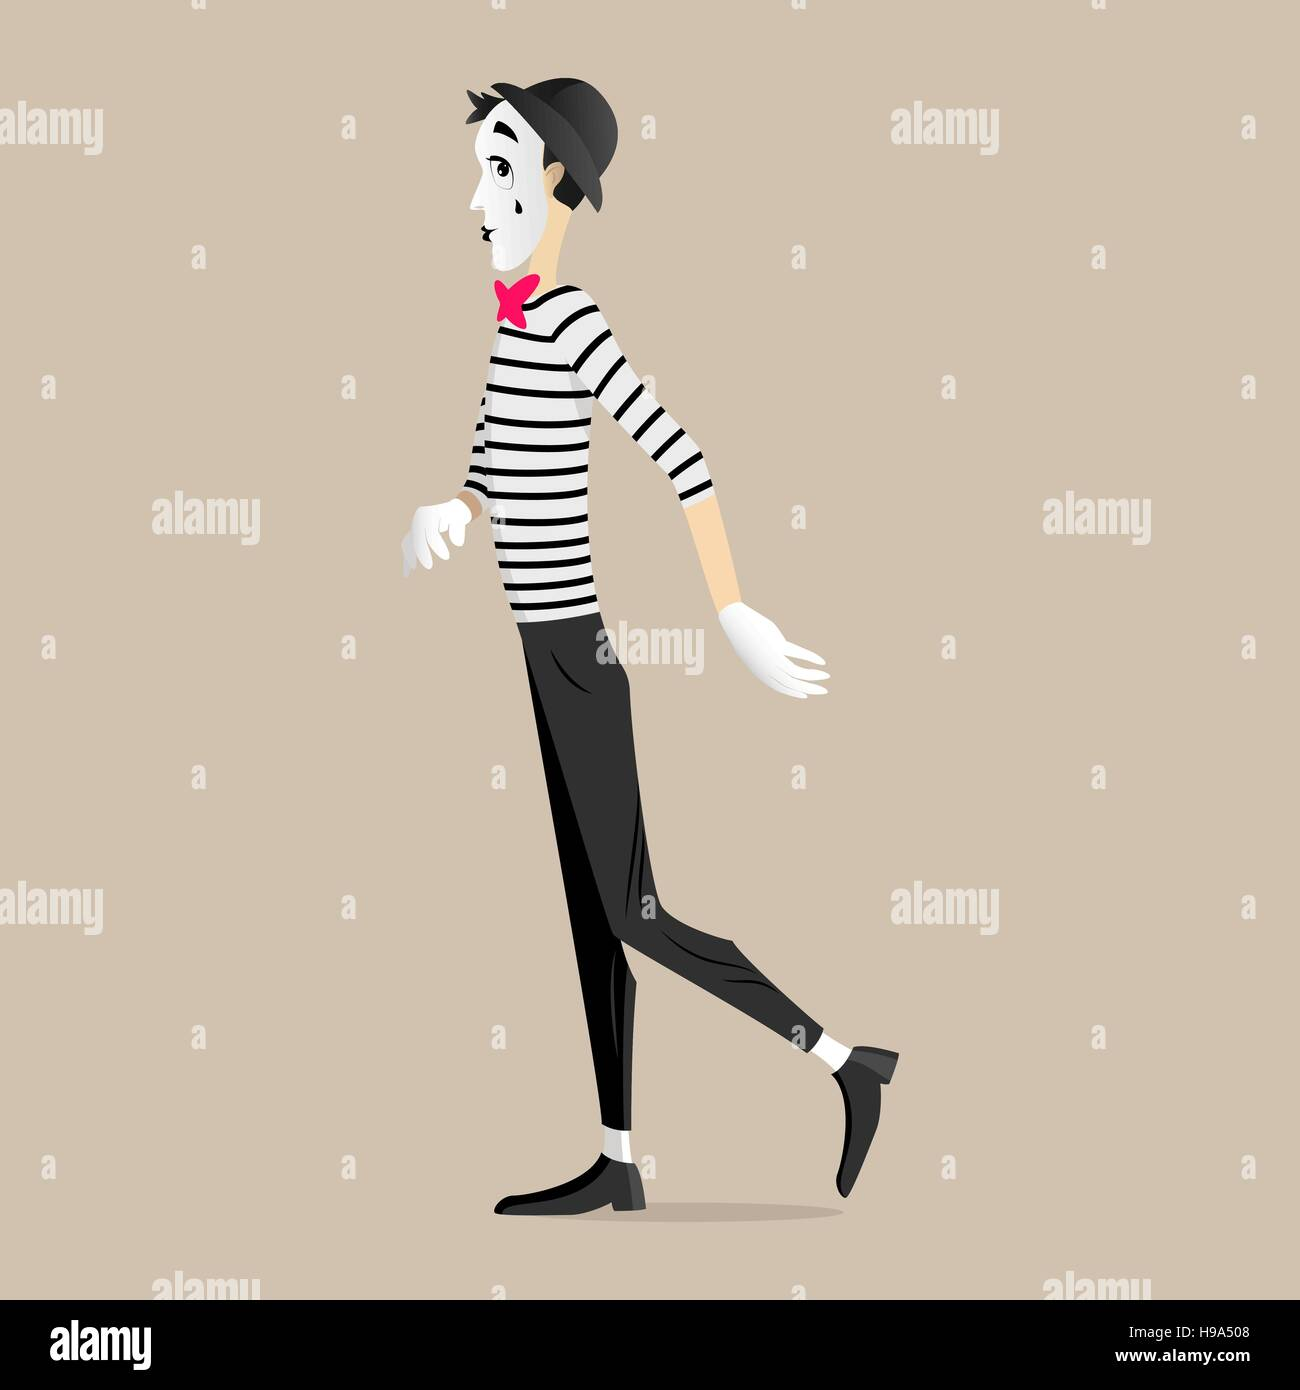 A Mime performing a pantomime called sliding walk - Stock Vector